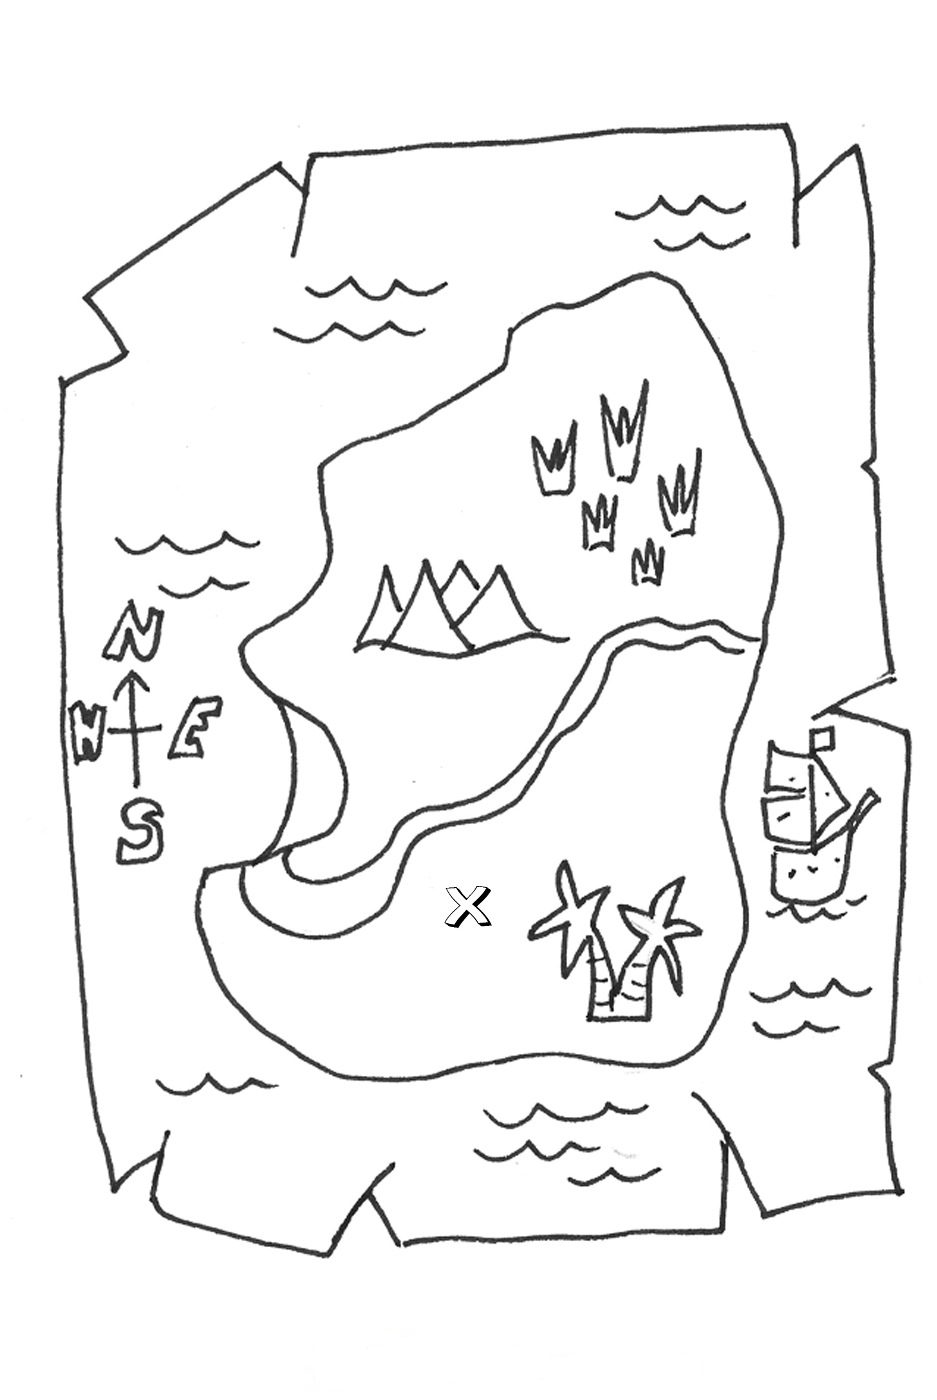 map coloring pages. Real Treasure Hunts  Cryptic Treasures Map Coloring Pages My nephew loves coloring pages dealing with pirates maps and